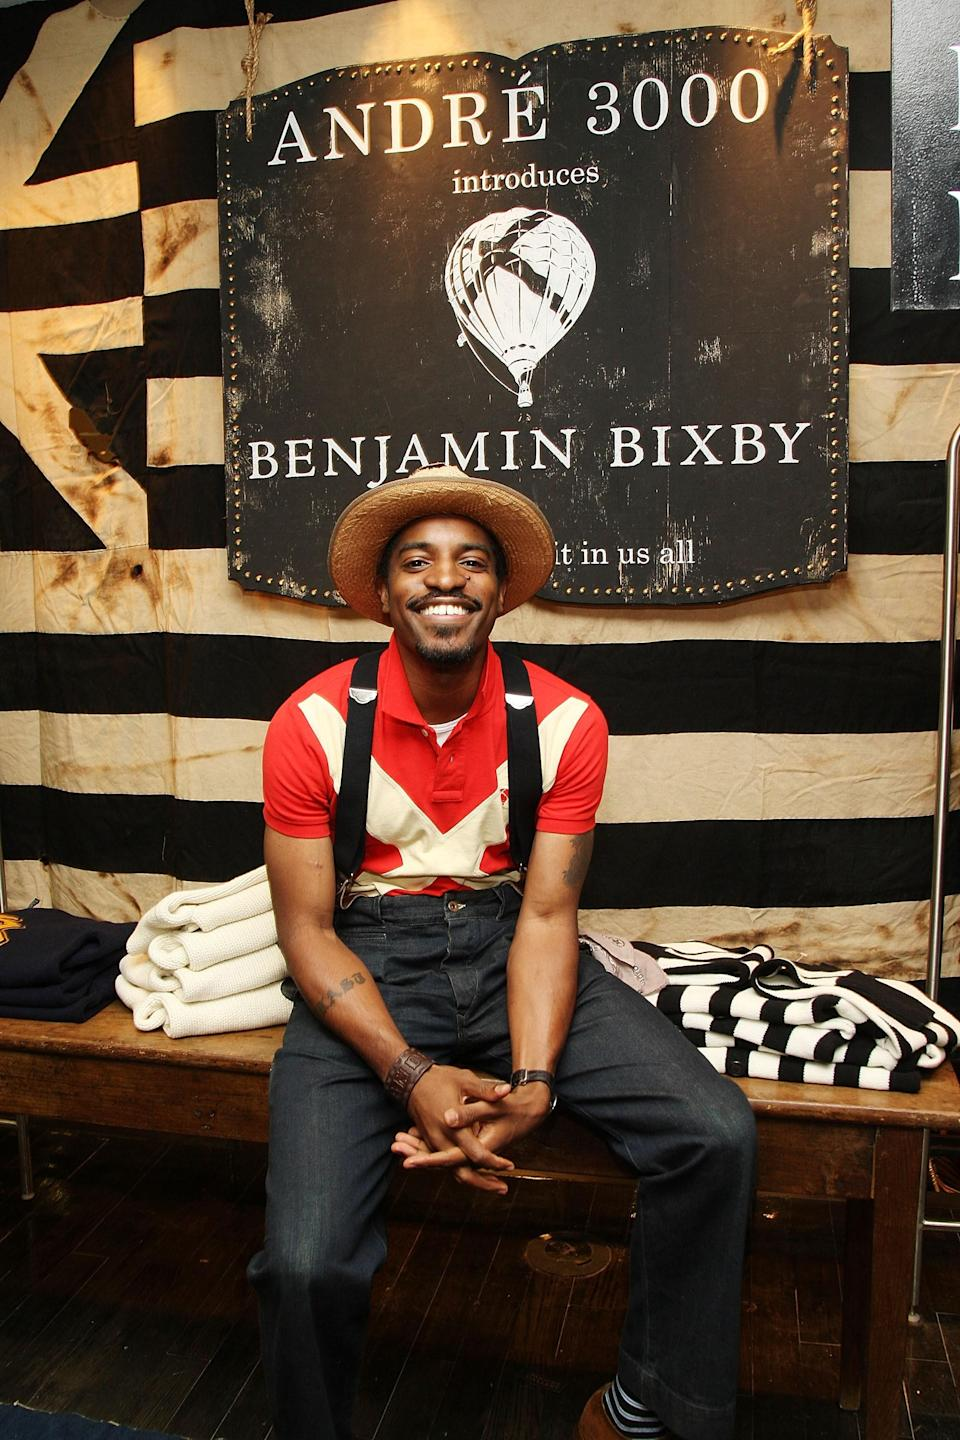 """Launched in 2008, Benjamin Bixby was Andre 3000's <a href=""""https://www.nytimes.com/2008/10/02/fashion/02BIXBY.html"""" rel=""""nofollow noopener"""" target=""""_blank"""" data-ylk=""""slk:menswear line"""" class=""""link rapid-noclick-resp"""">menswear line</a> influenced by """"1930s college football documentaries."""" Complete with collegiate sweaters, newsboy caps, and toggle knit sweaters, it had a sporty, heritage feel. The line didn't last, but it surprisingly still looks and feels modern today."""